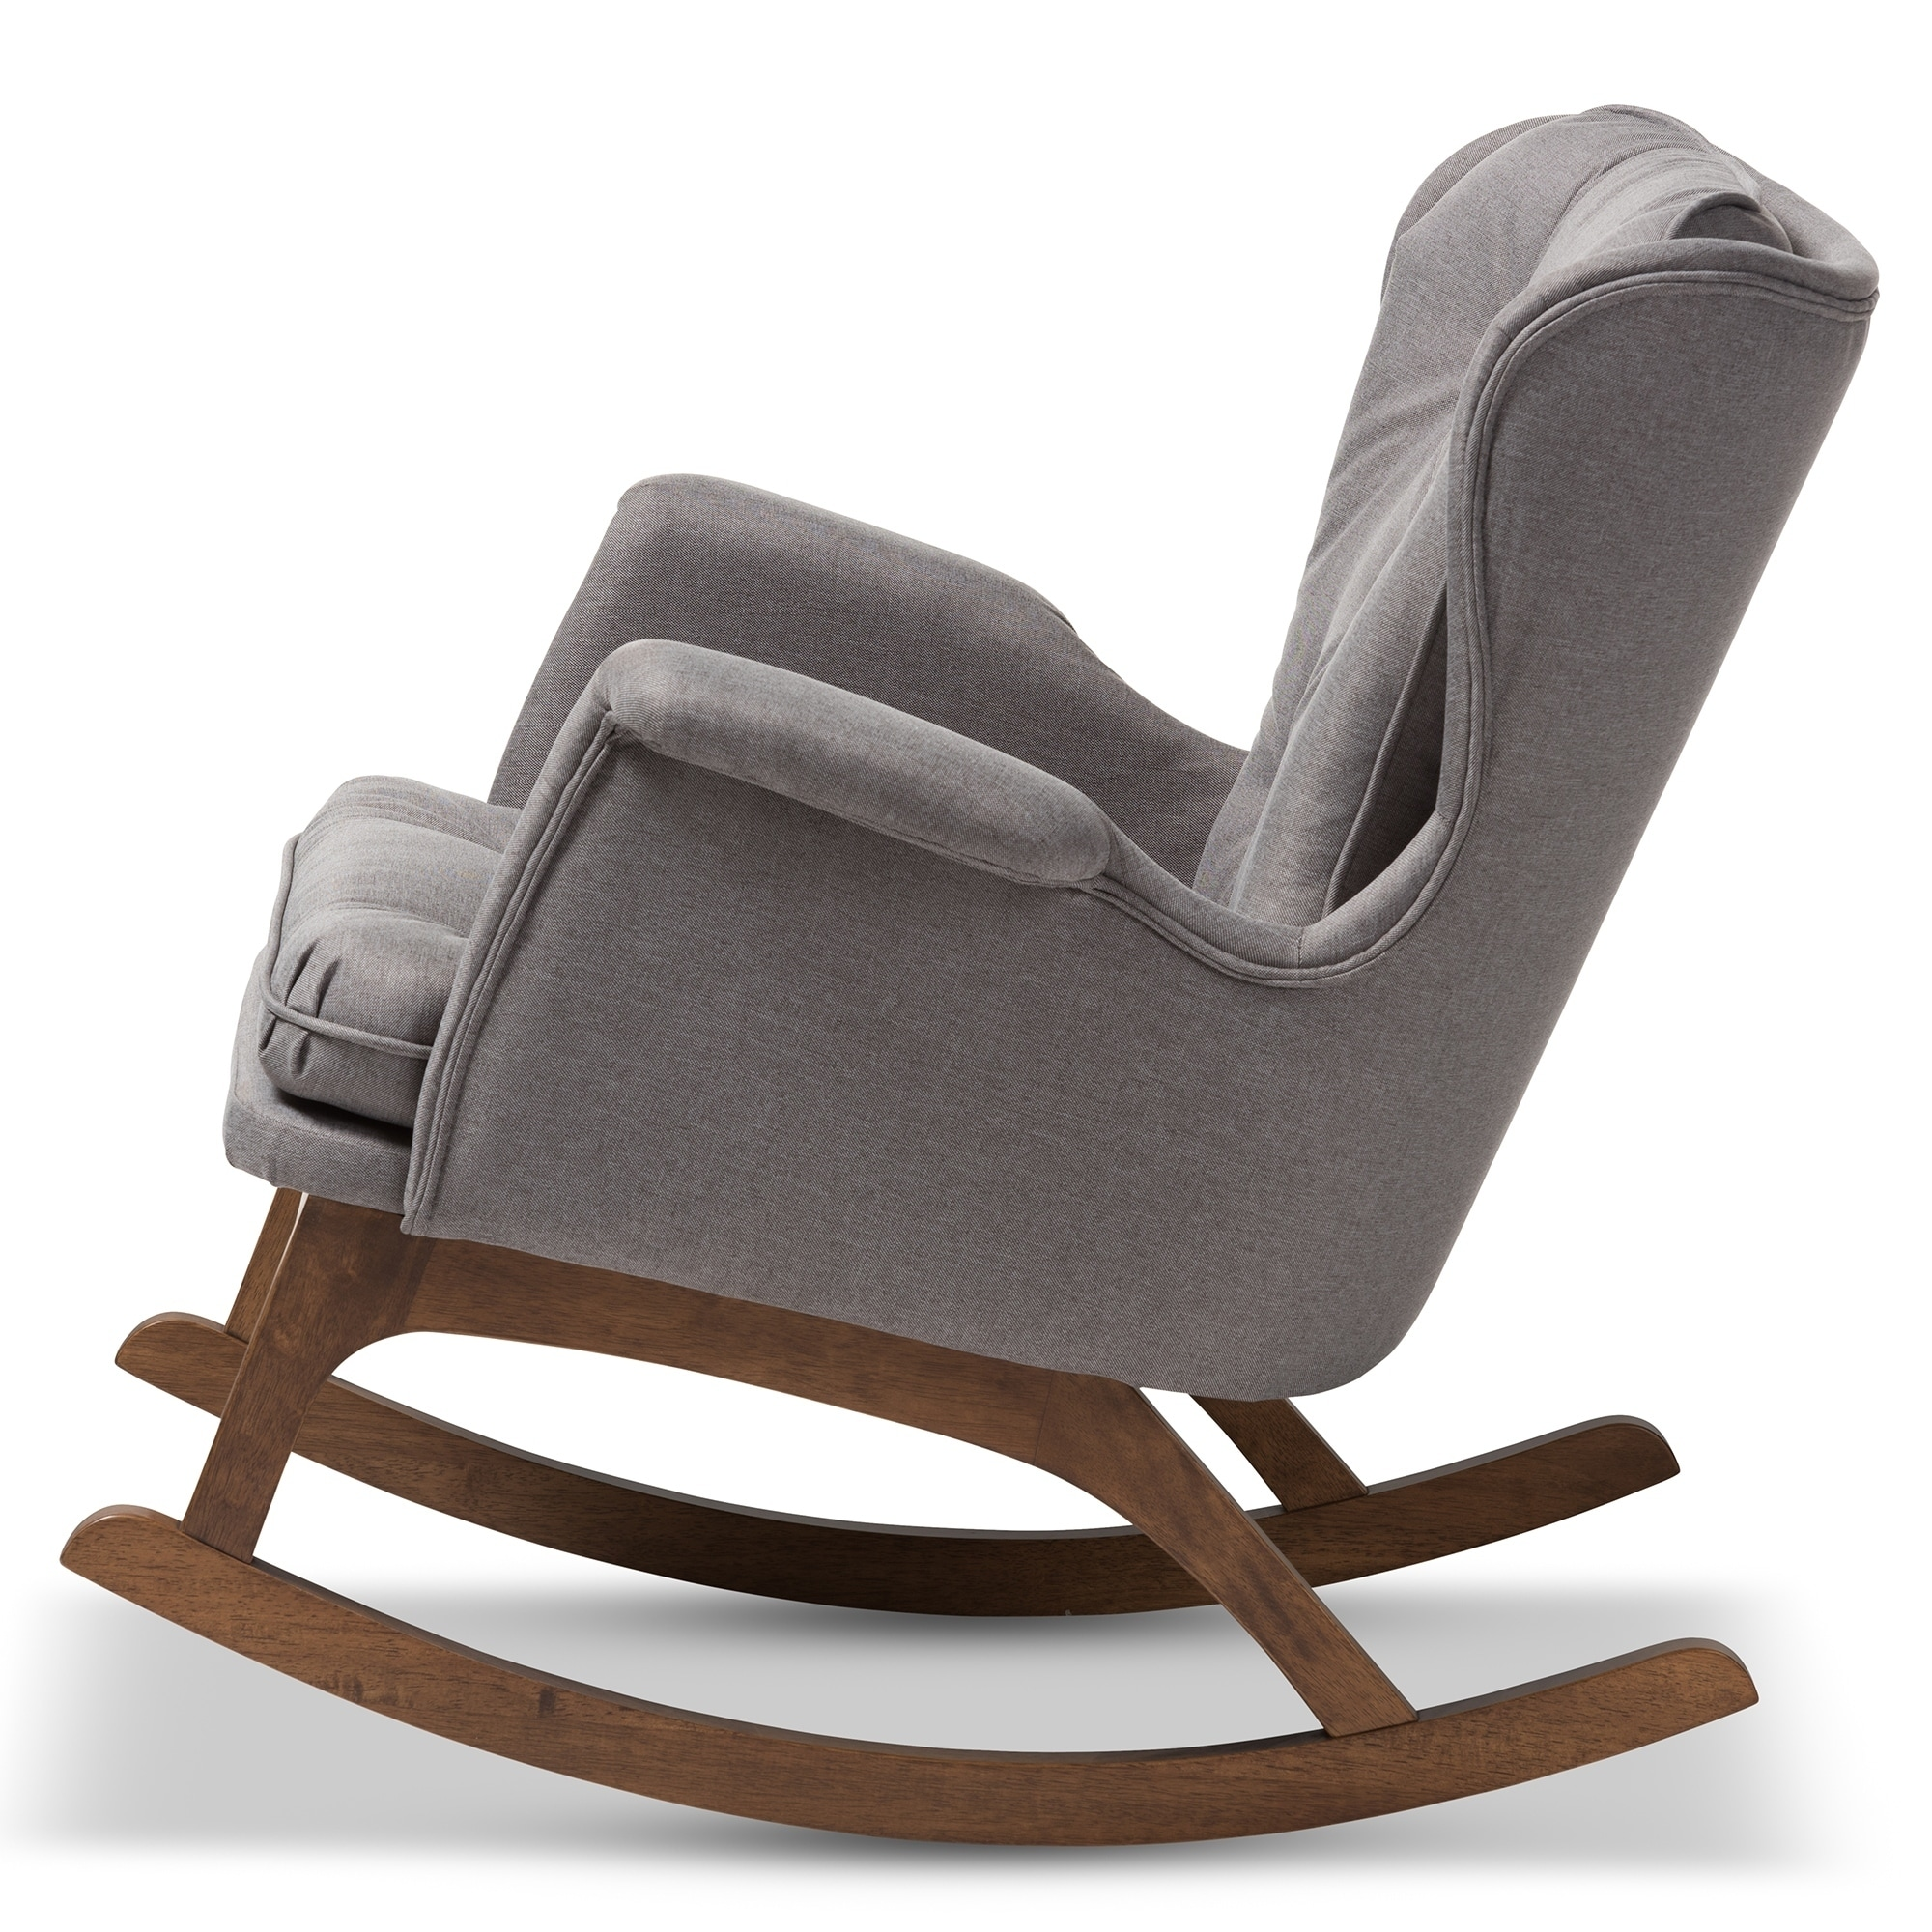 century extraordinary design brockmann ideas spacious home petersen chair sale rocking h mid by famous for